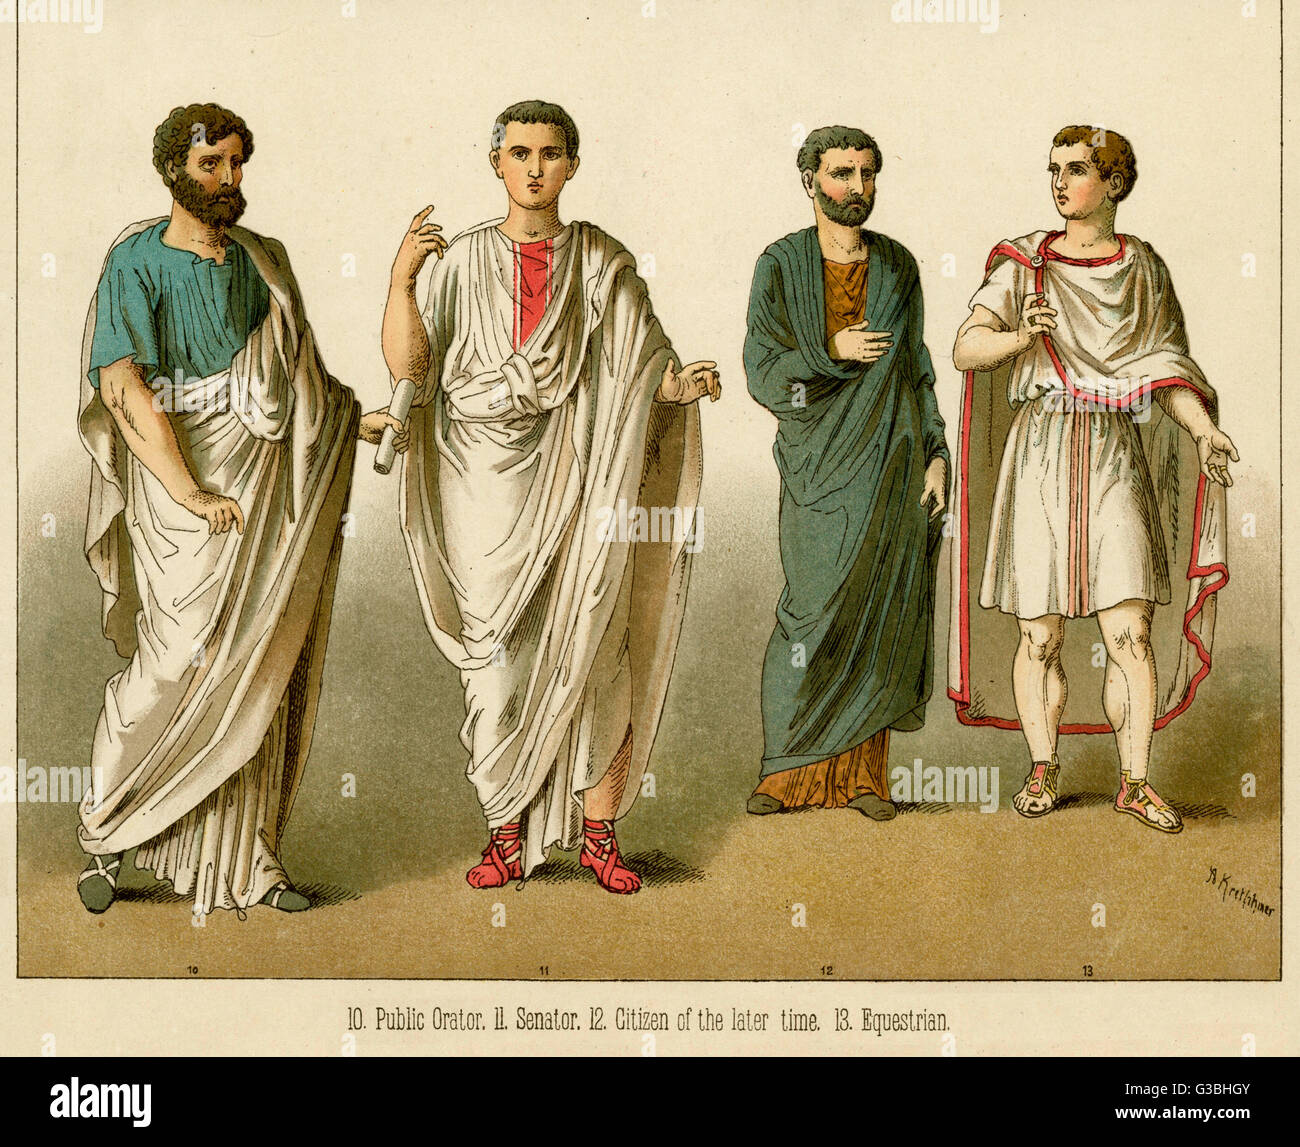 ancient rome clothing stock photos u0026 ancient rome clothing stock